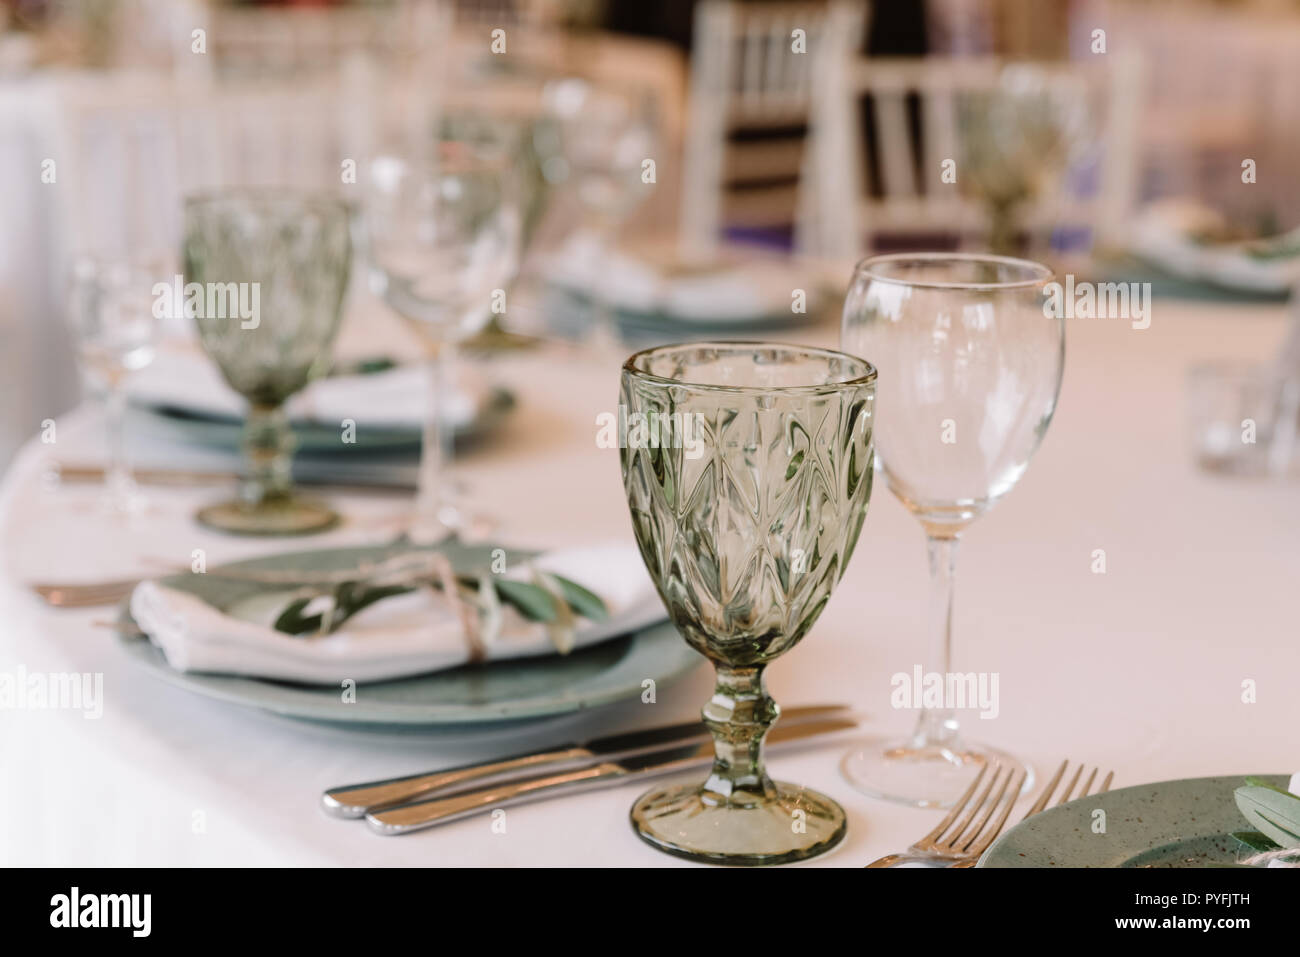 Lunch table for guests at a wedding. - Stock Image